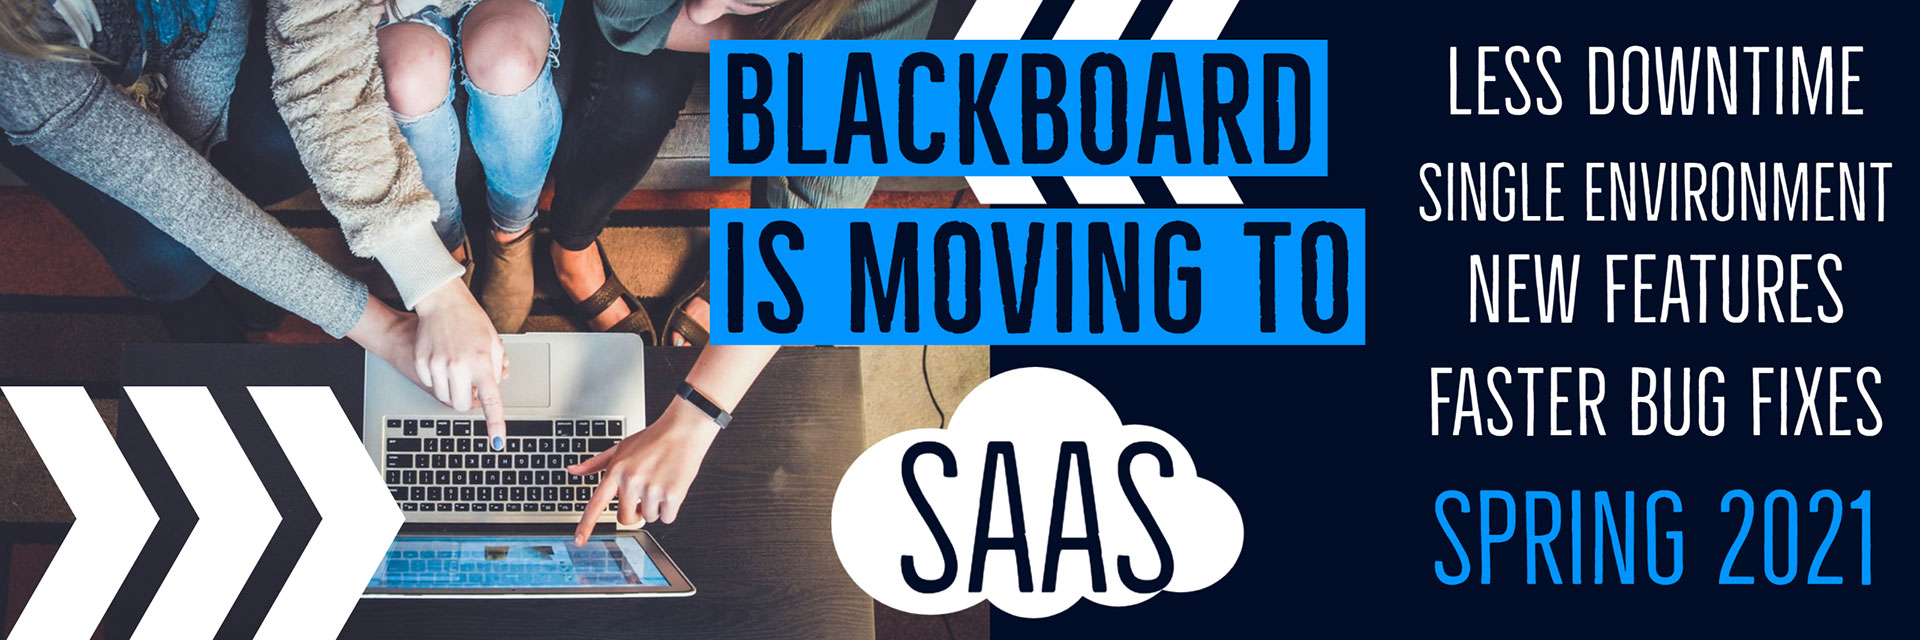 Blackboard Moving to Saas Decorative Banner